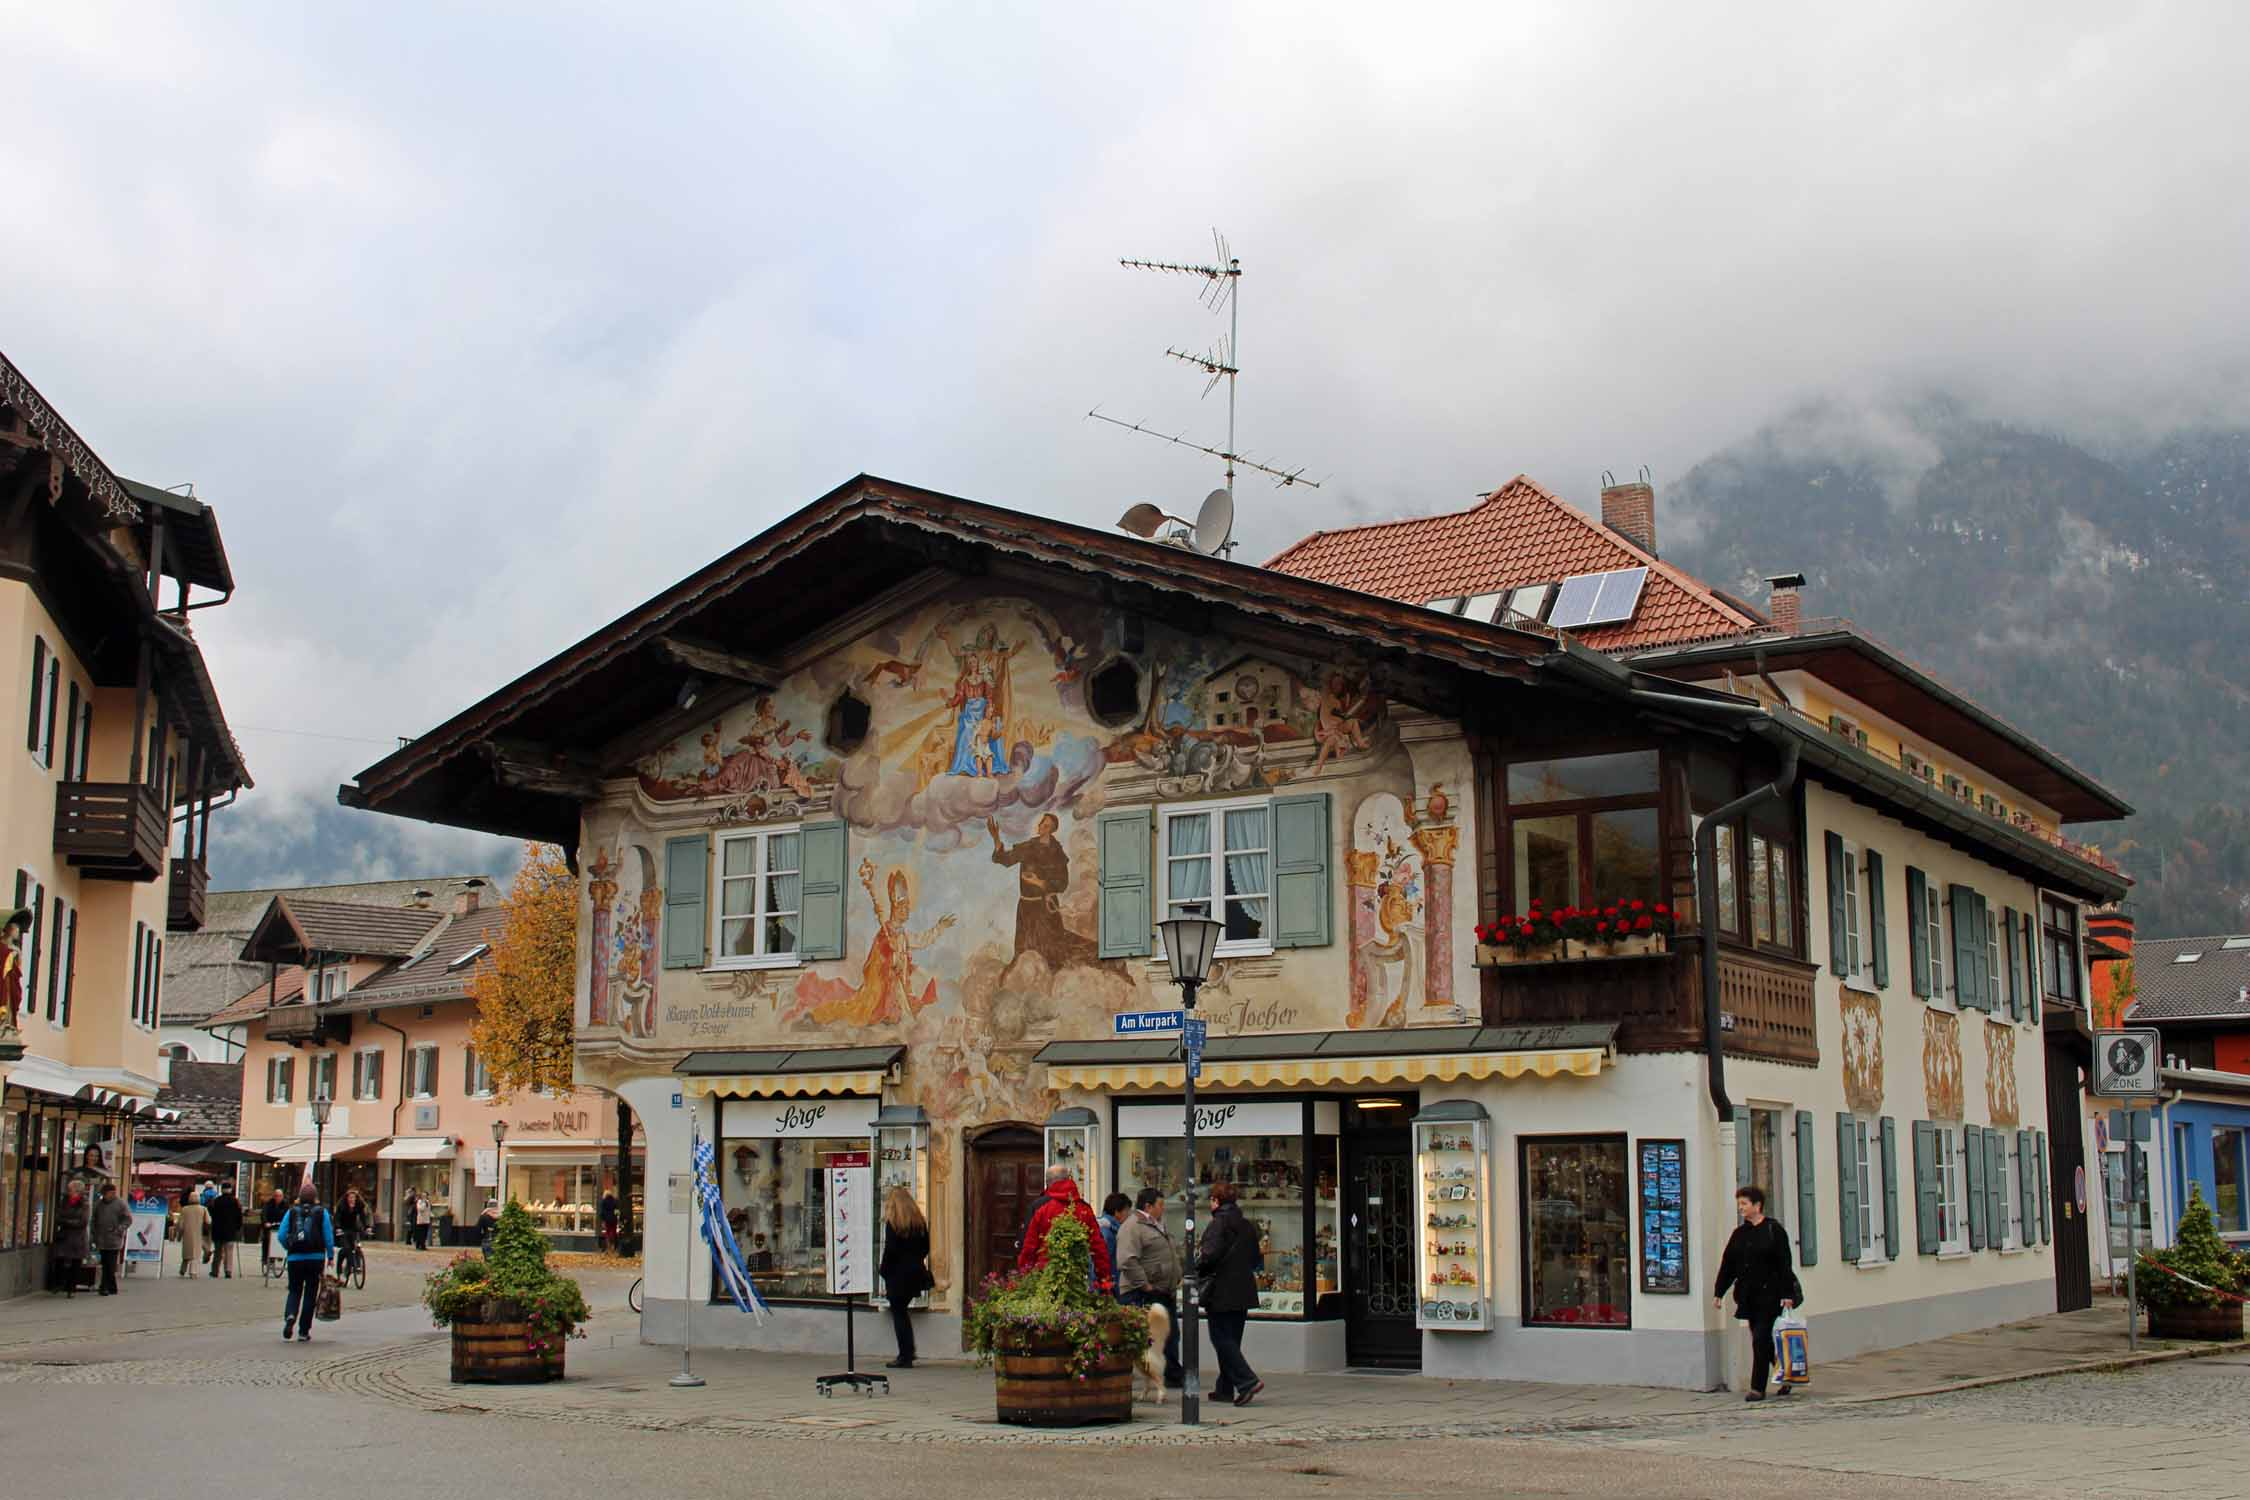 The city of Garmisch, Bavaria